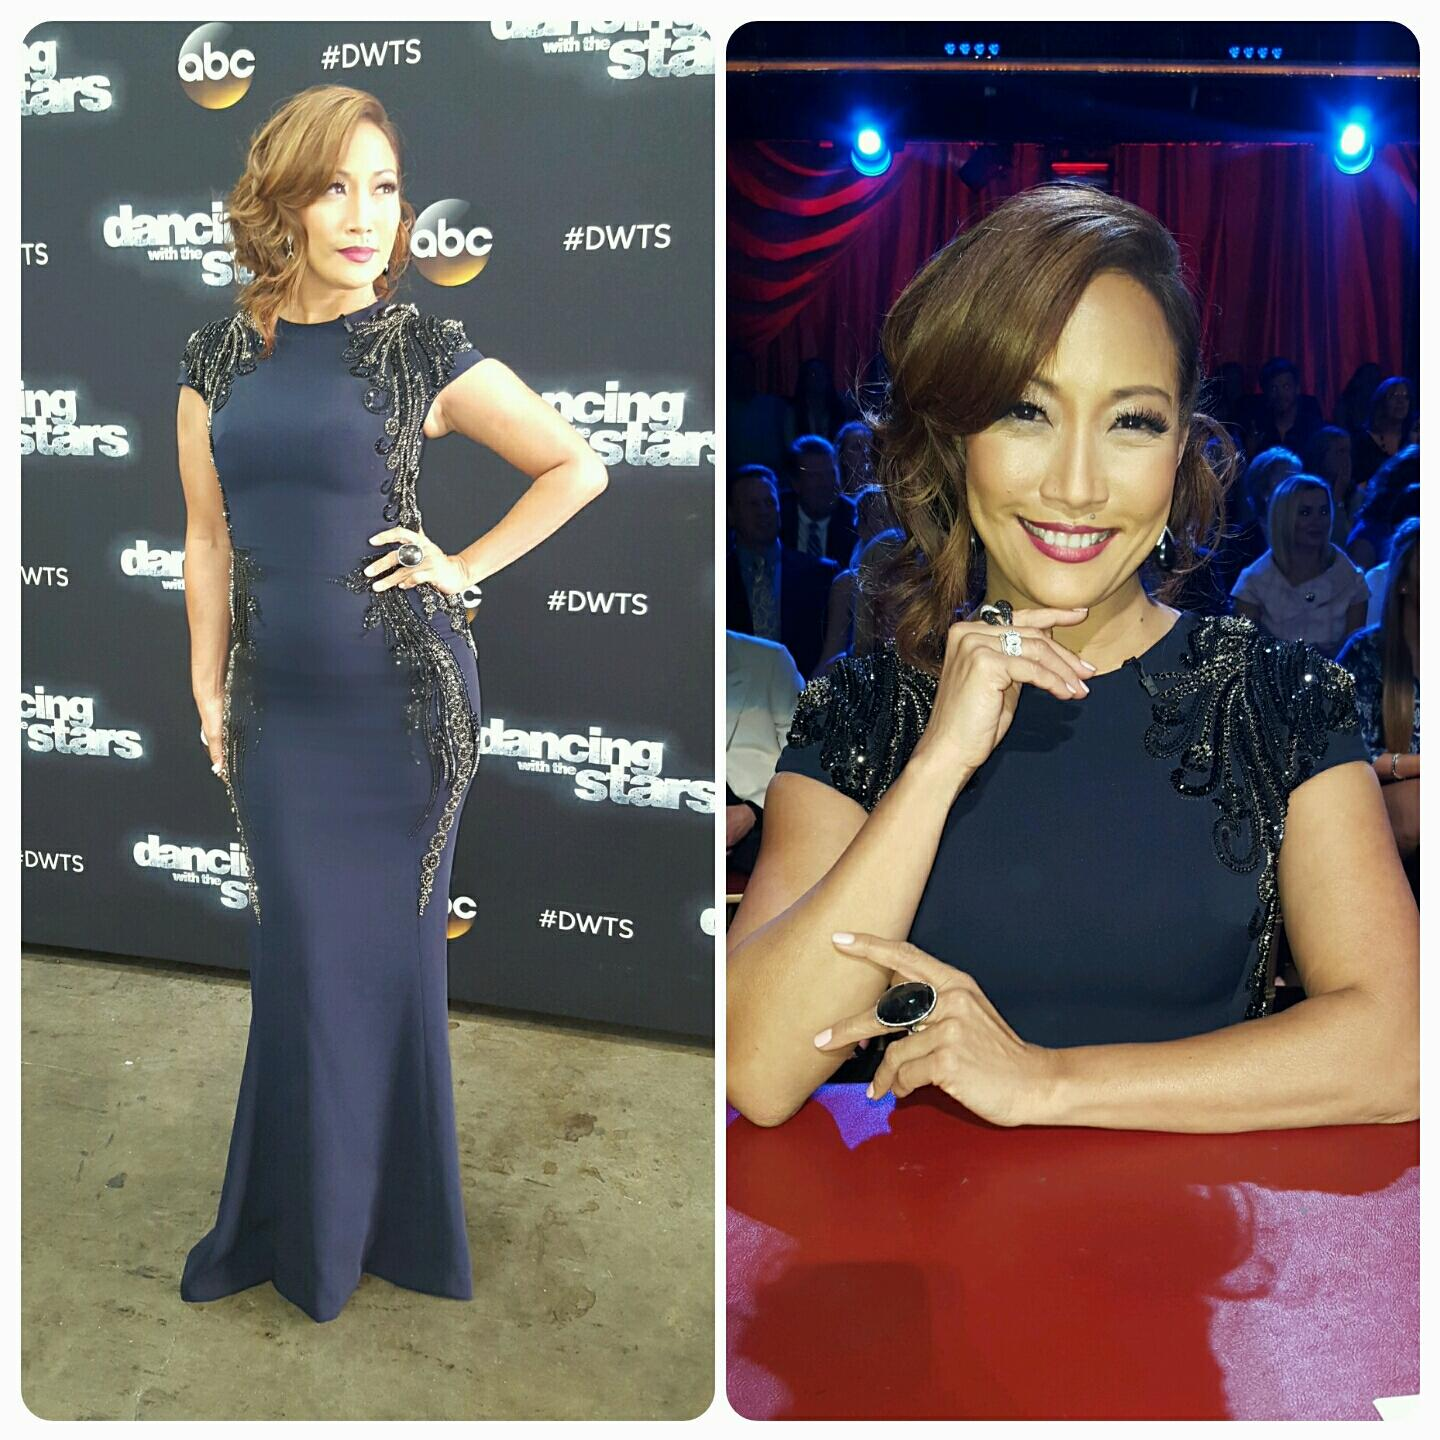 Carrie Ann Inaba's 'Dancing With the Stars' blog, Week 5 pic